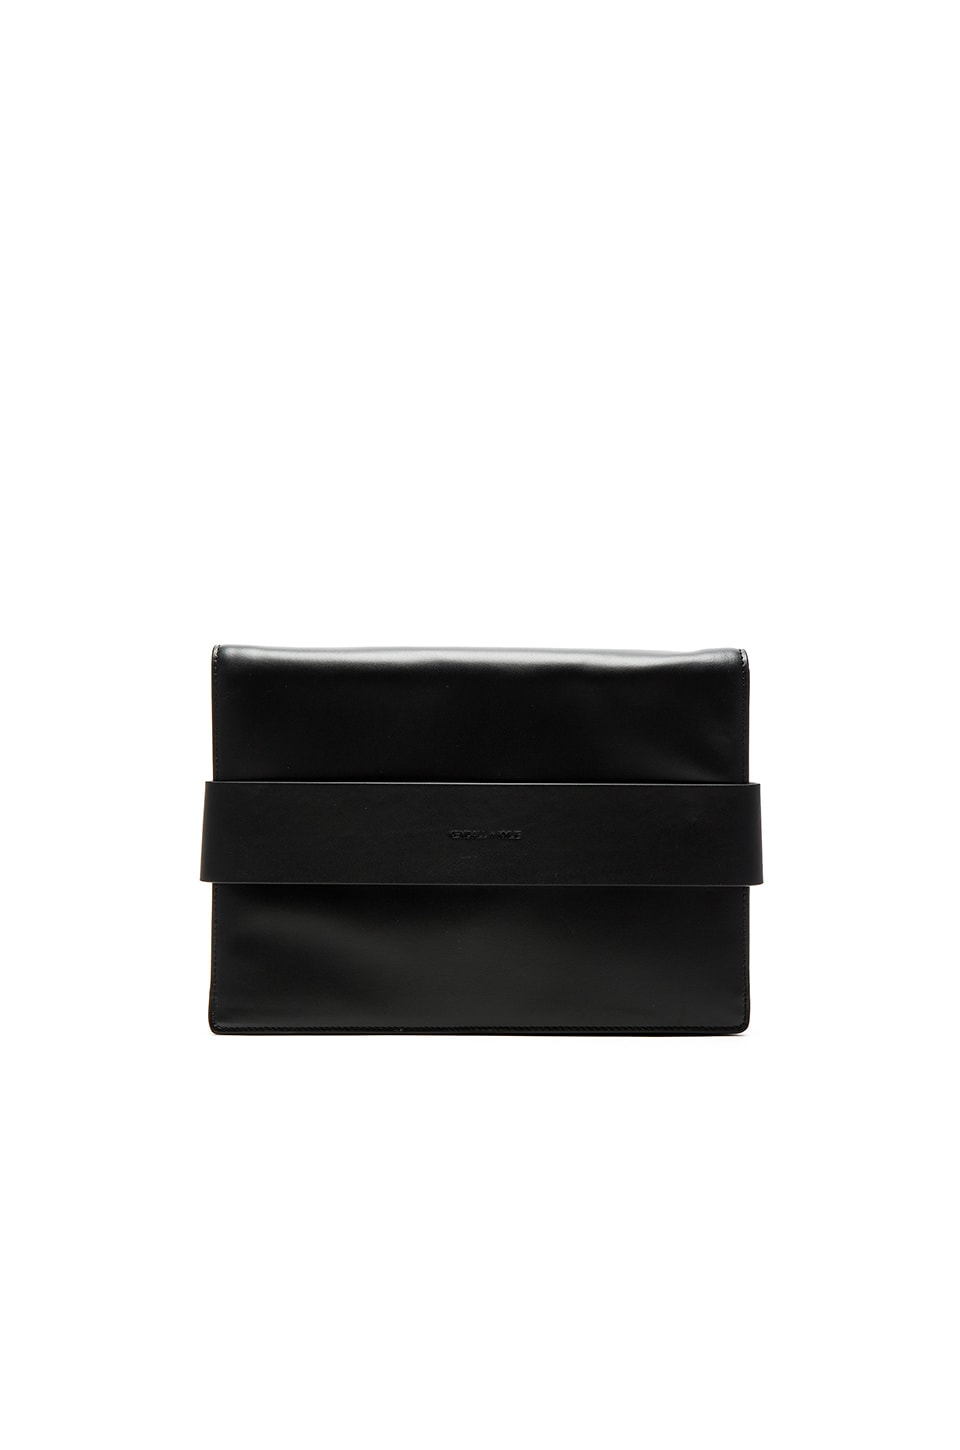 KENDALL + KYLIE Azuba Clutch in Black Smooth Leather